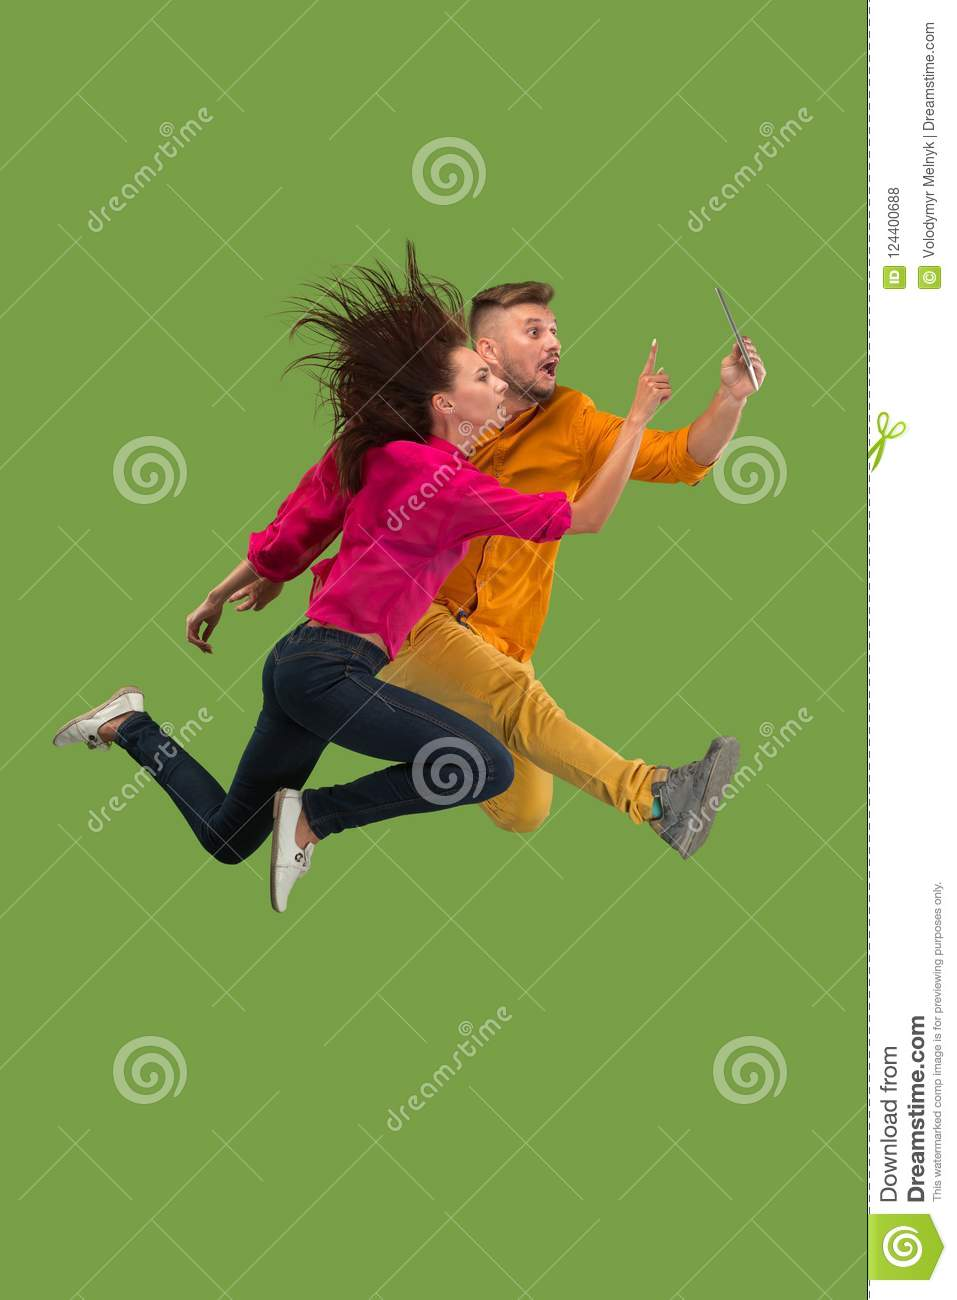 Jump of young couple over green studio background using laptop or tablet gadget while jumping.